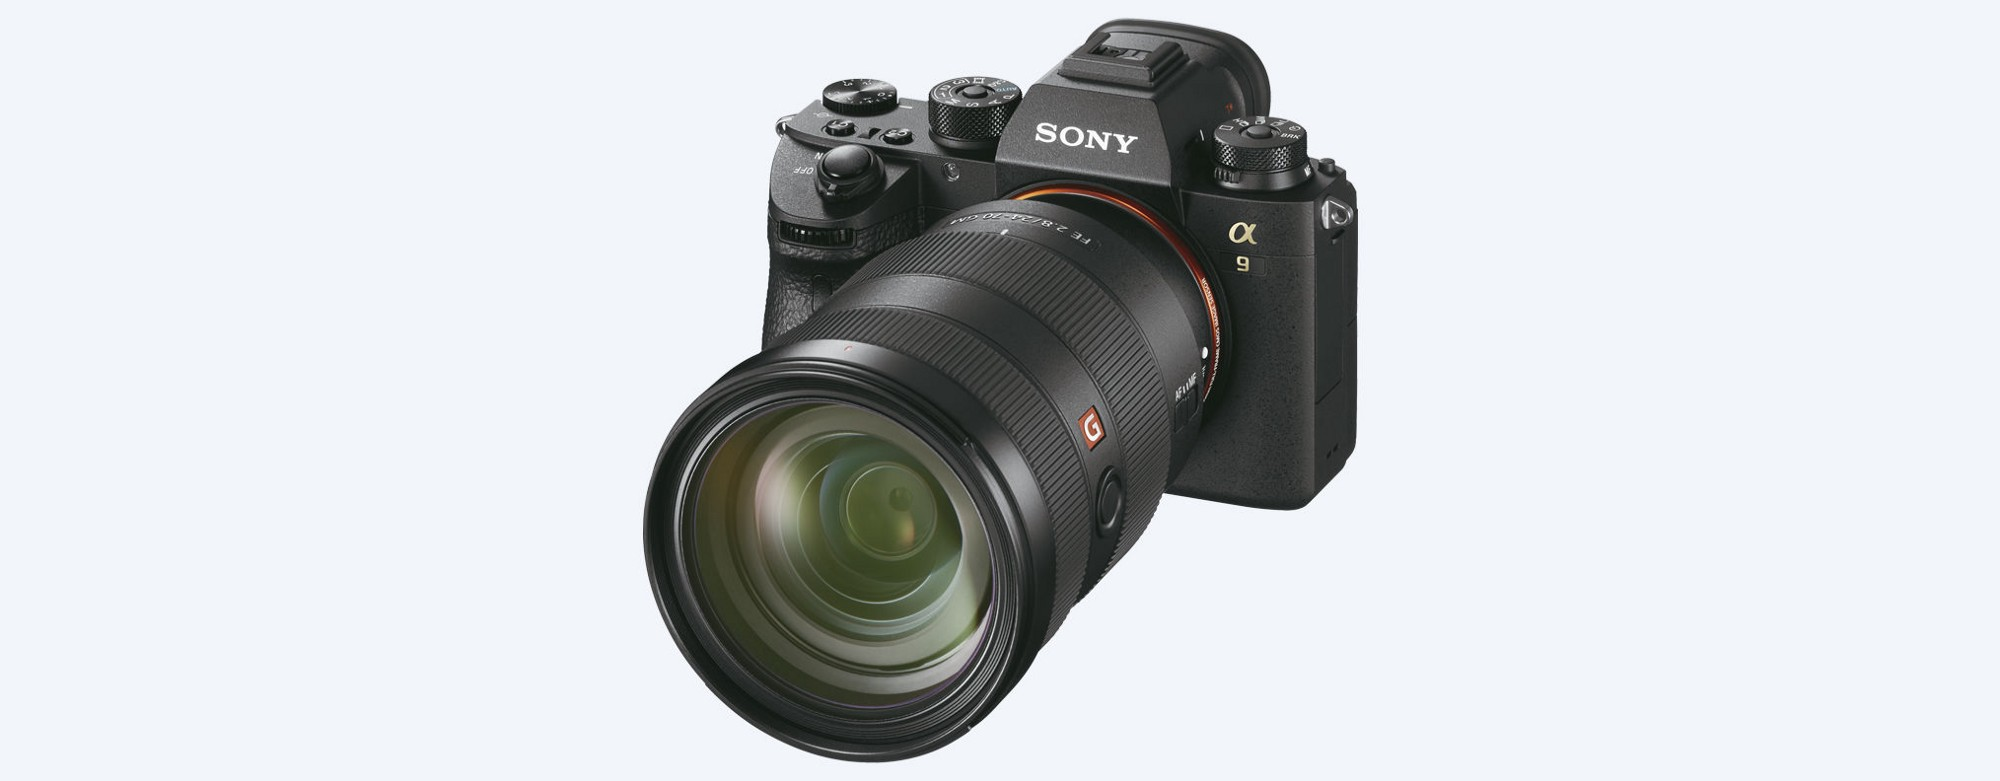 U.S. full-frame camera market growing only because of Sony